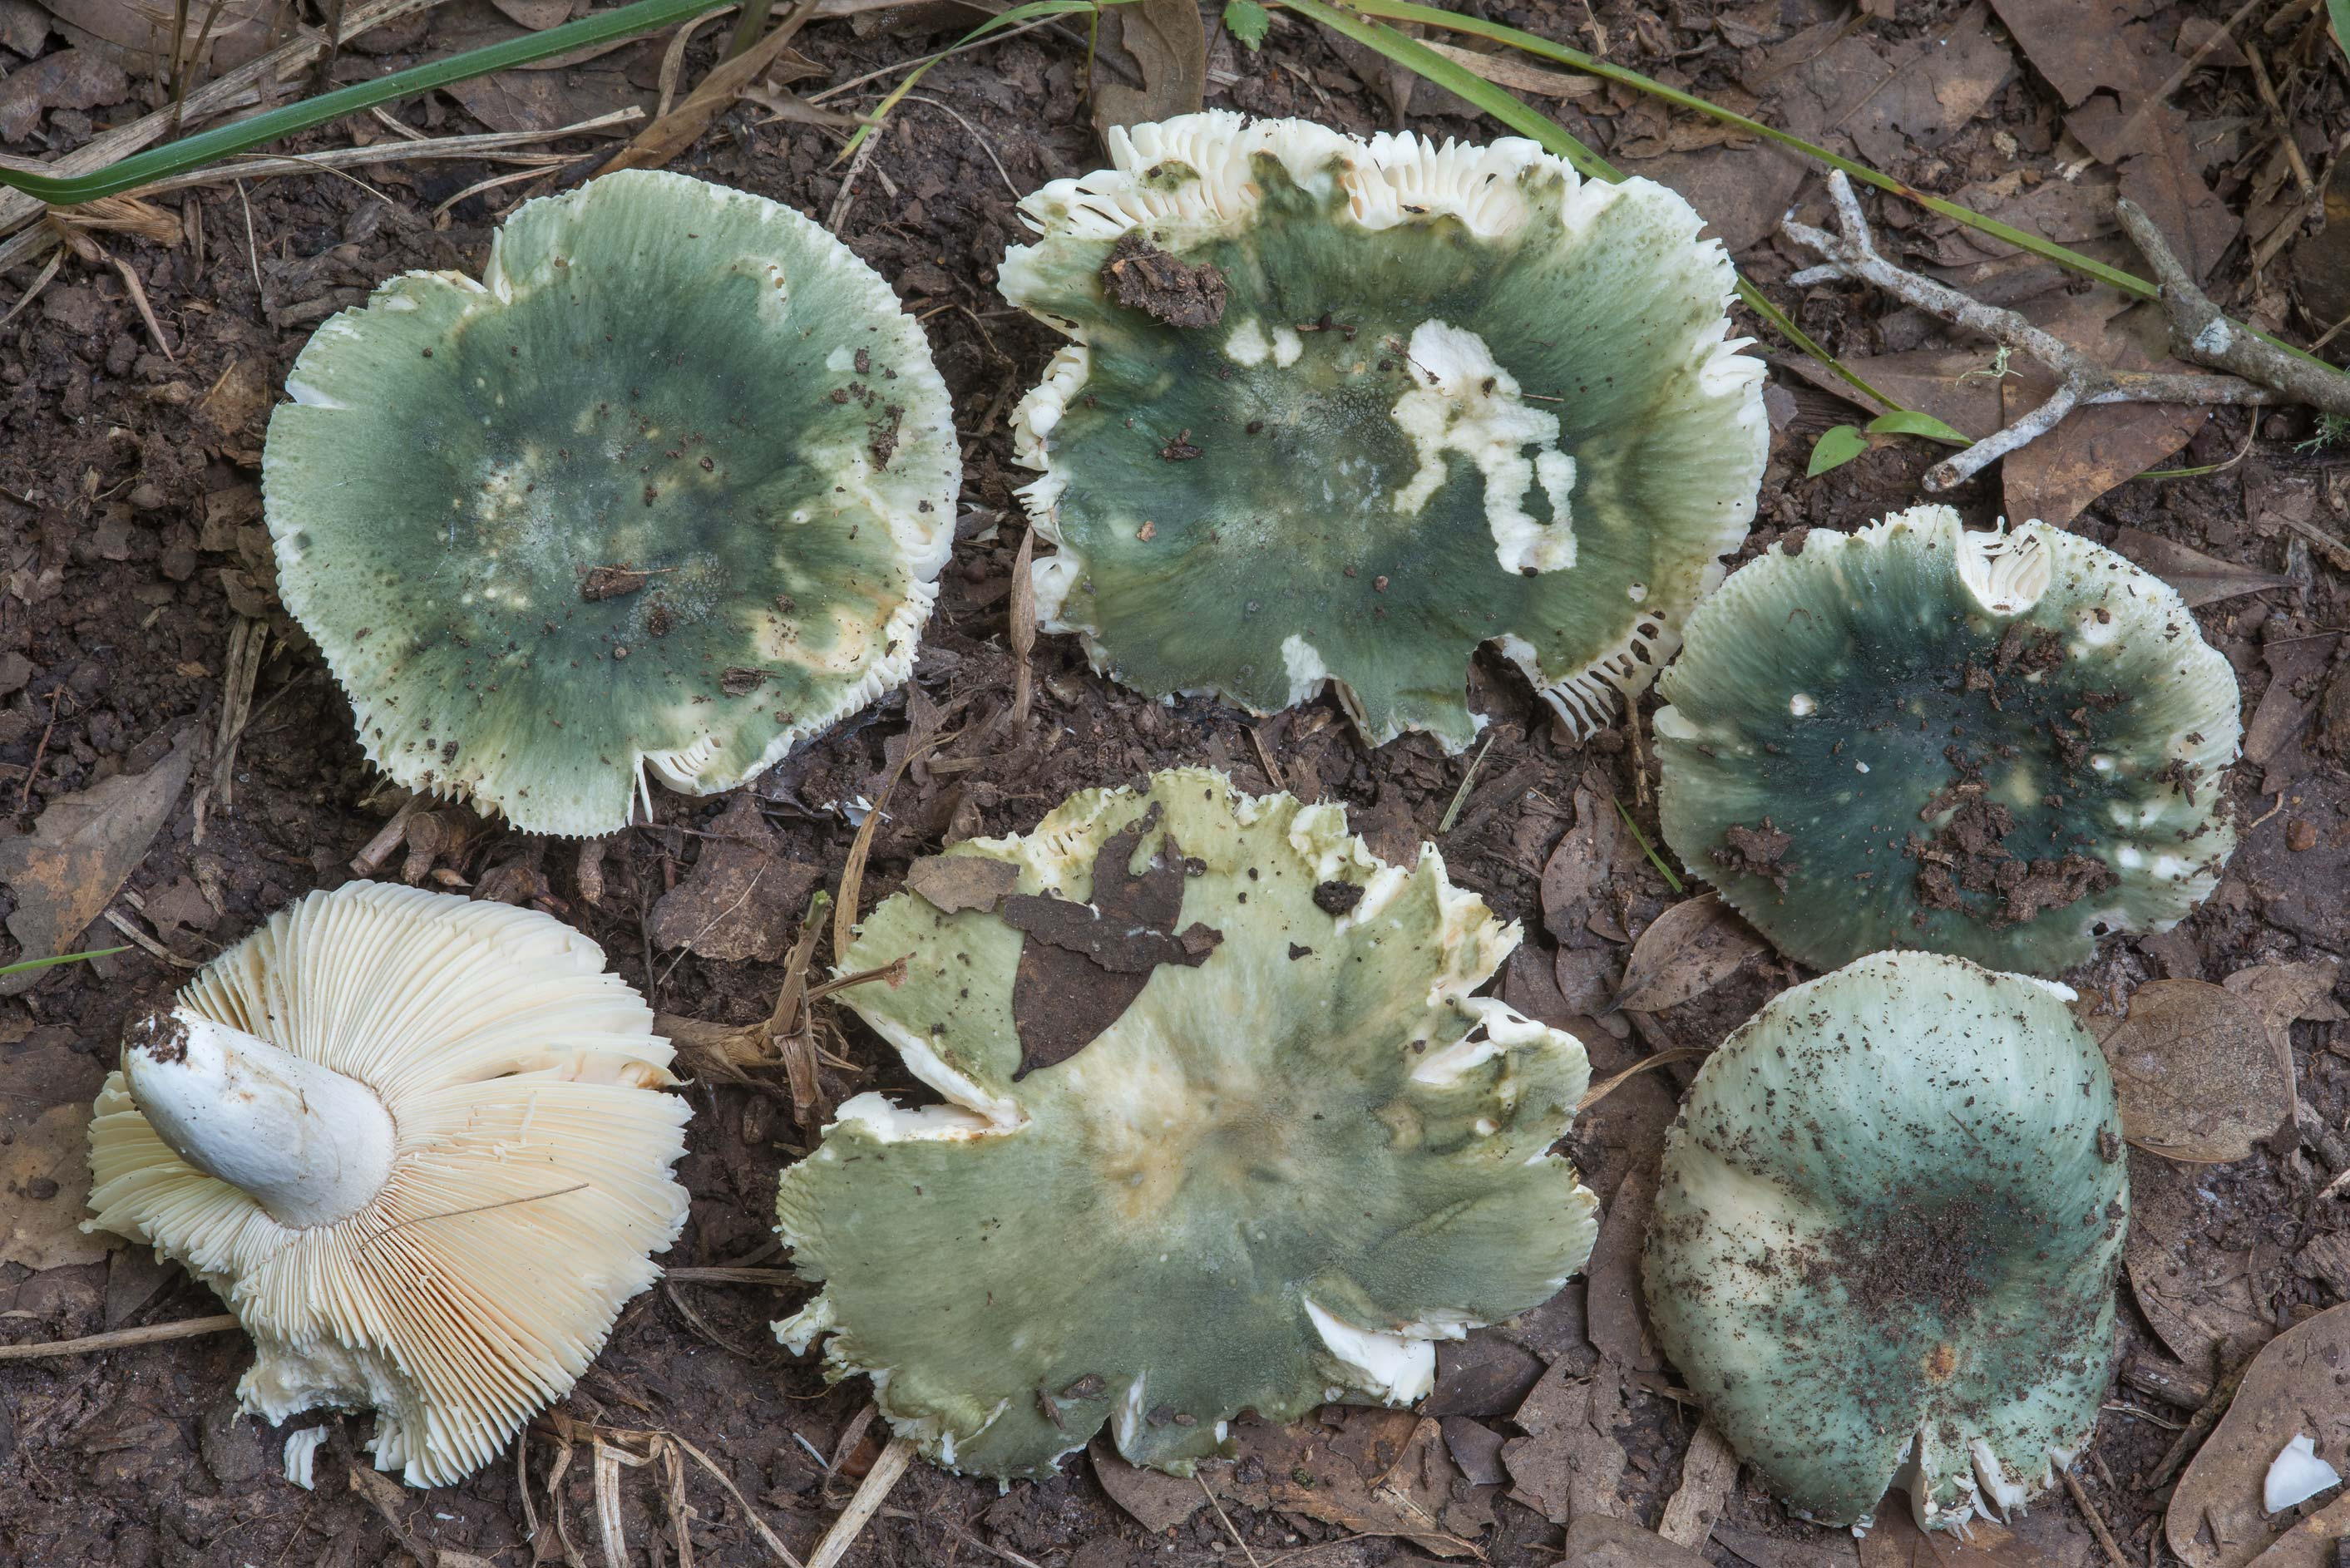 Group of turquoise brittlegill mushrooms (Russula...Creek Park. College Station, Texas